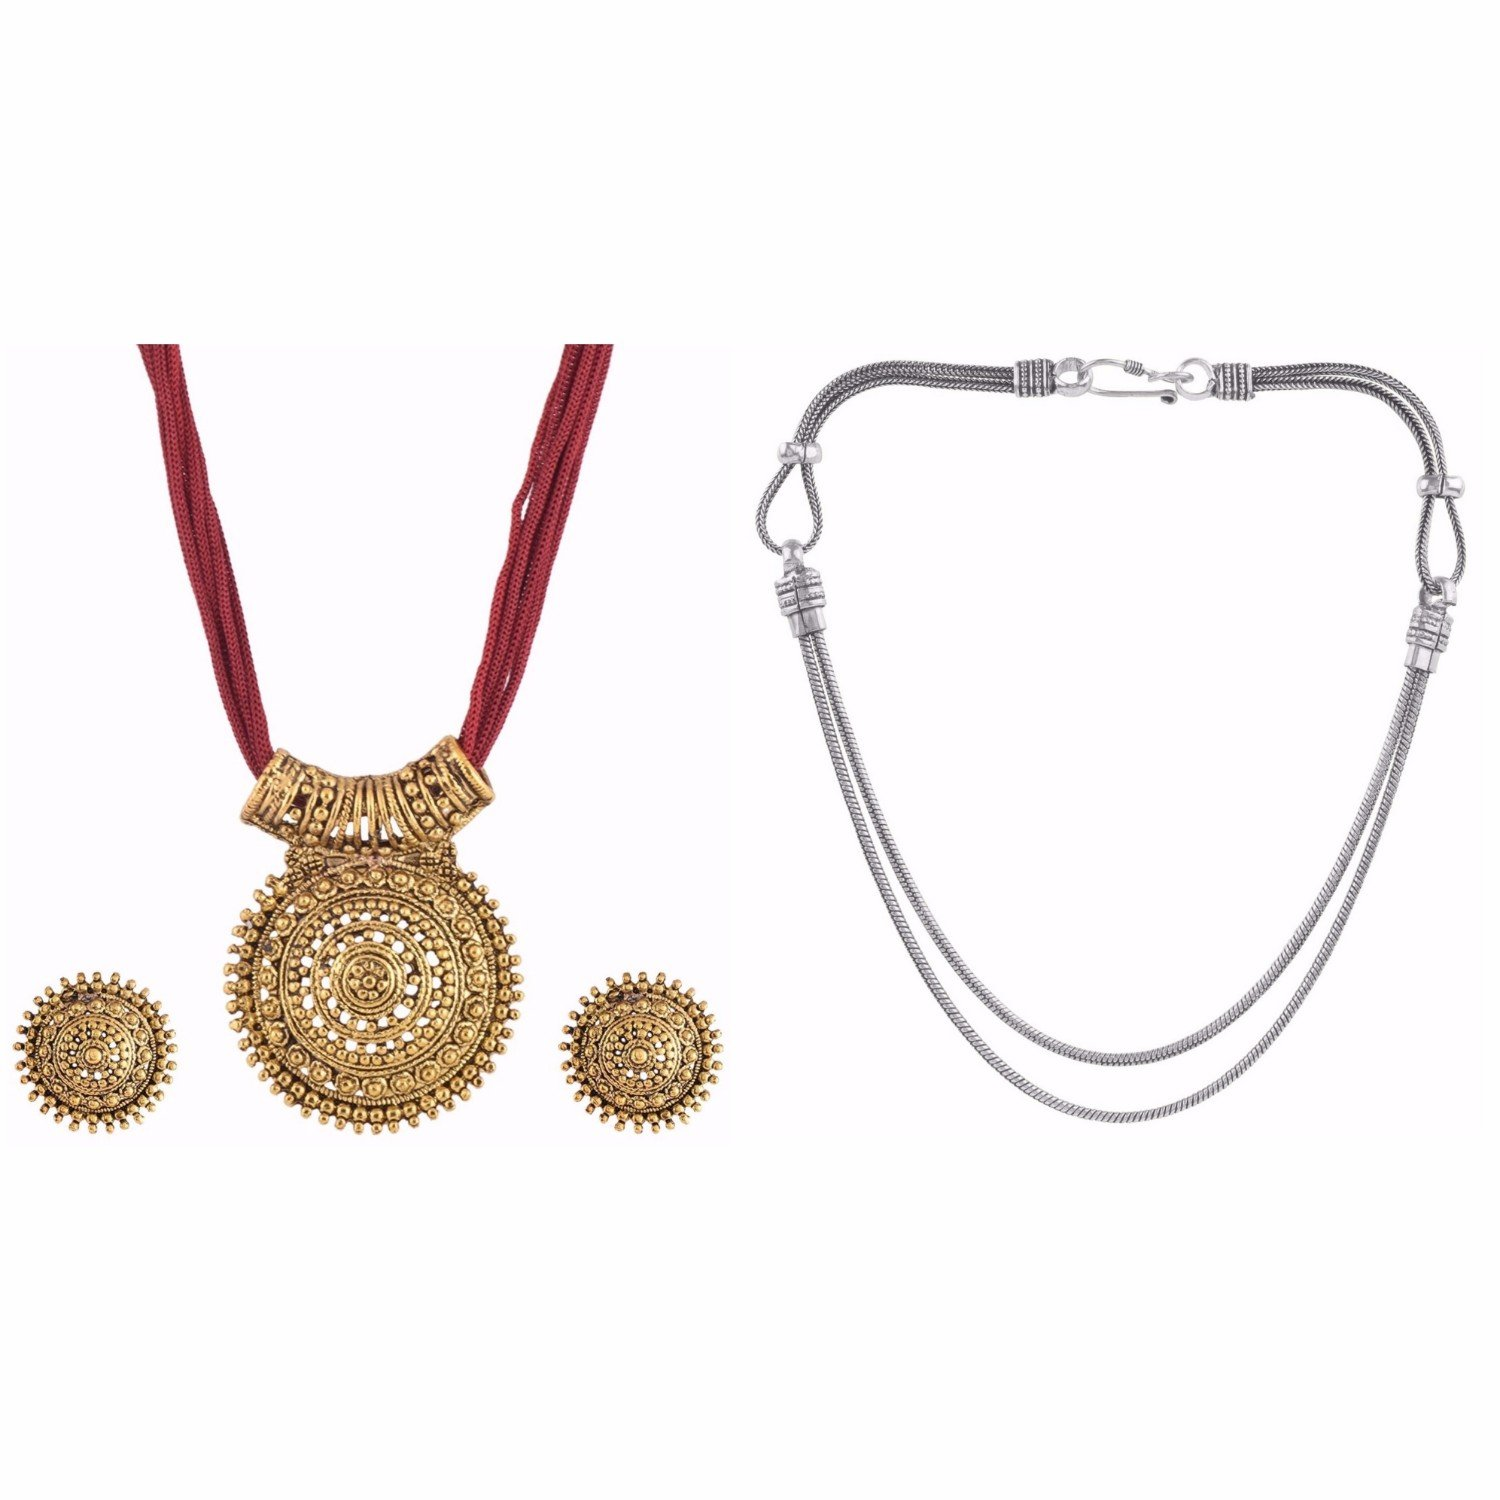 Efulgenz Indian Bollywood Traditional Heavy Bridal Designer Jewelry Necklace set in Antique 18K Gold Tone for Women and Girls (Combo 1)